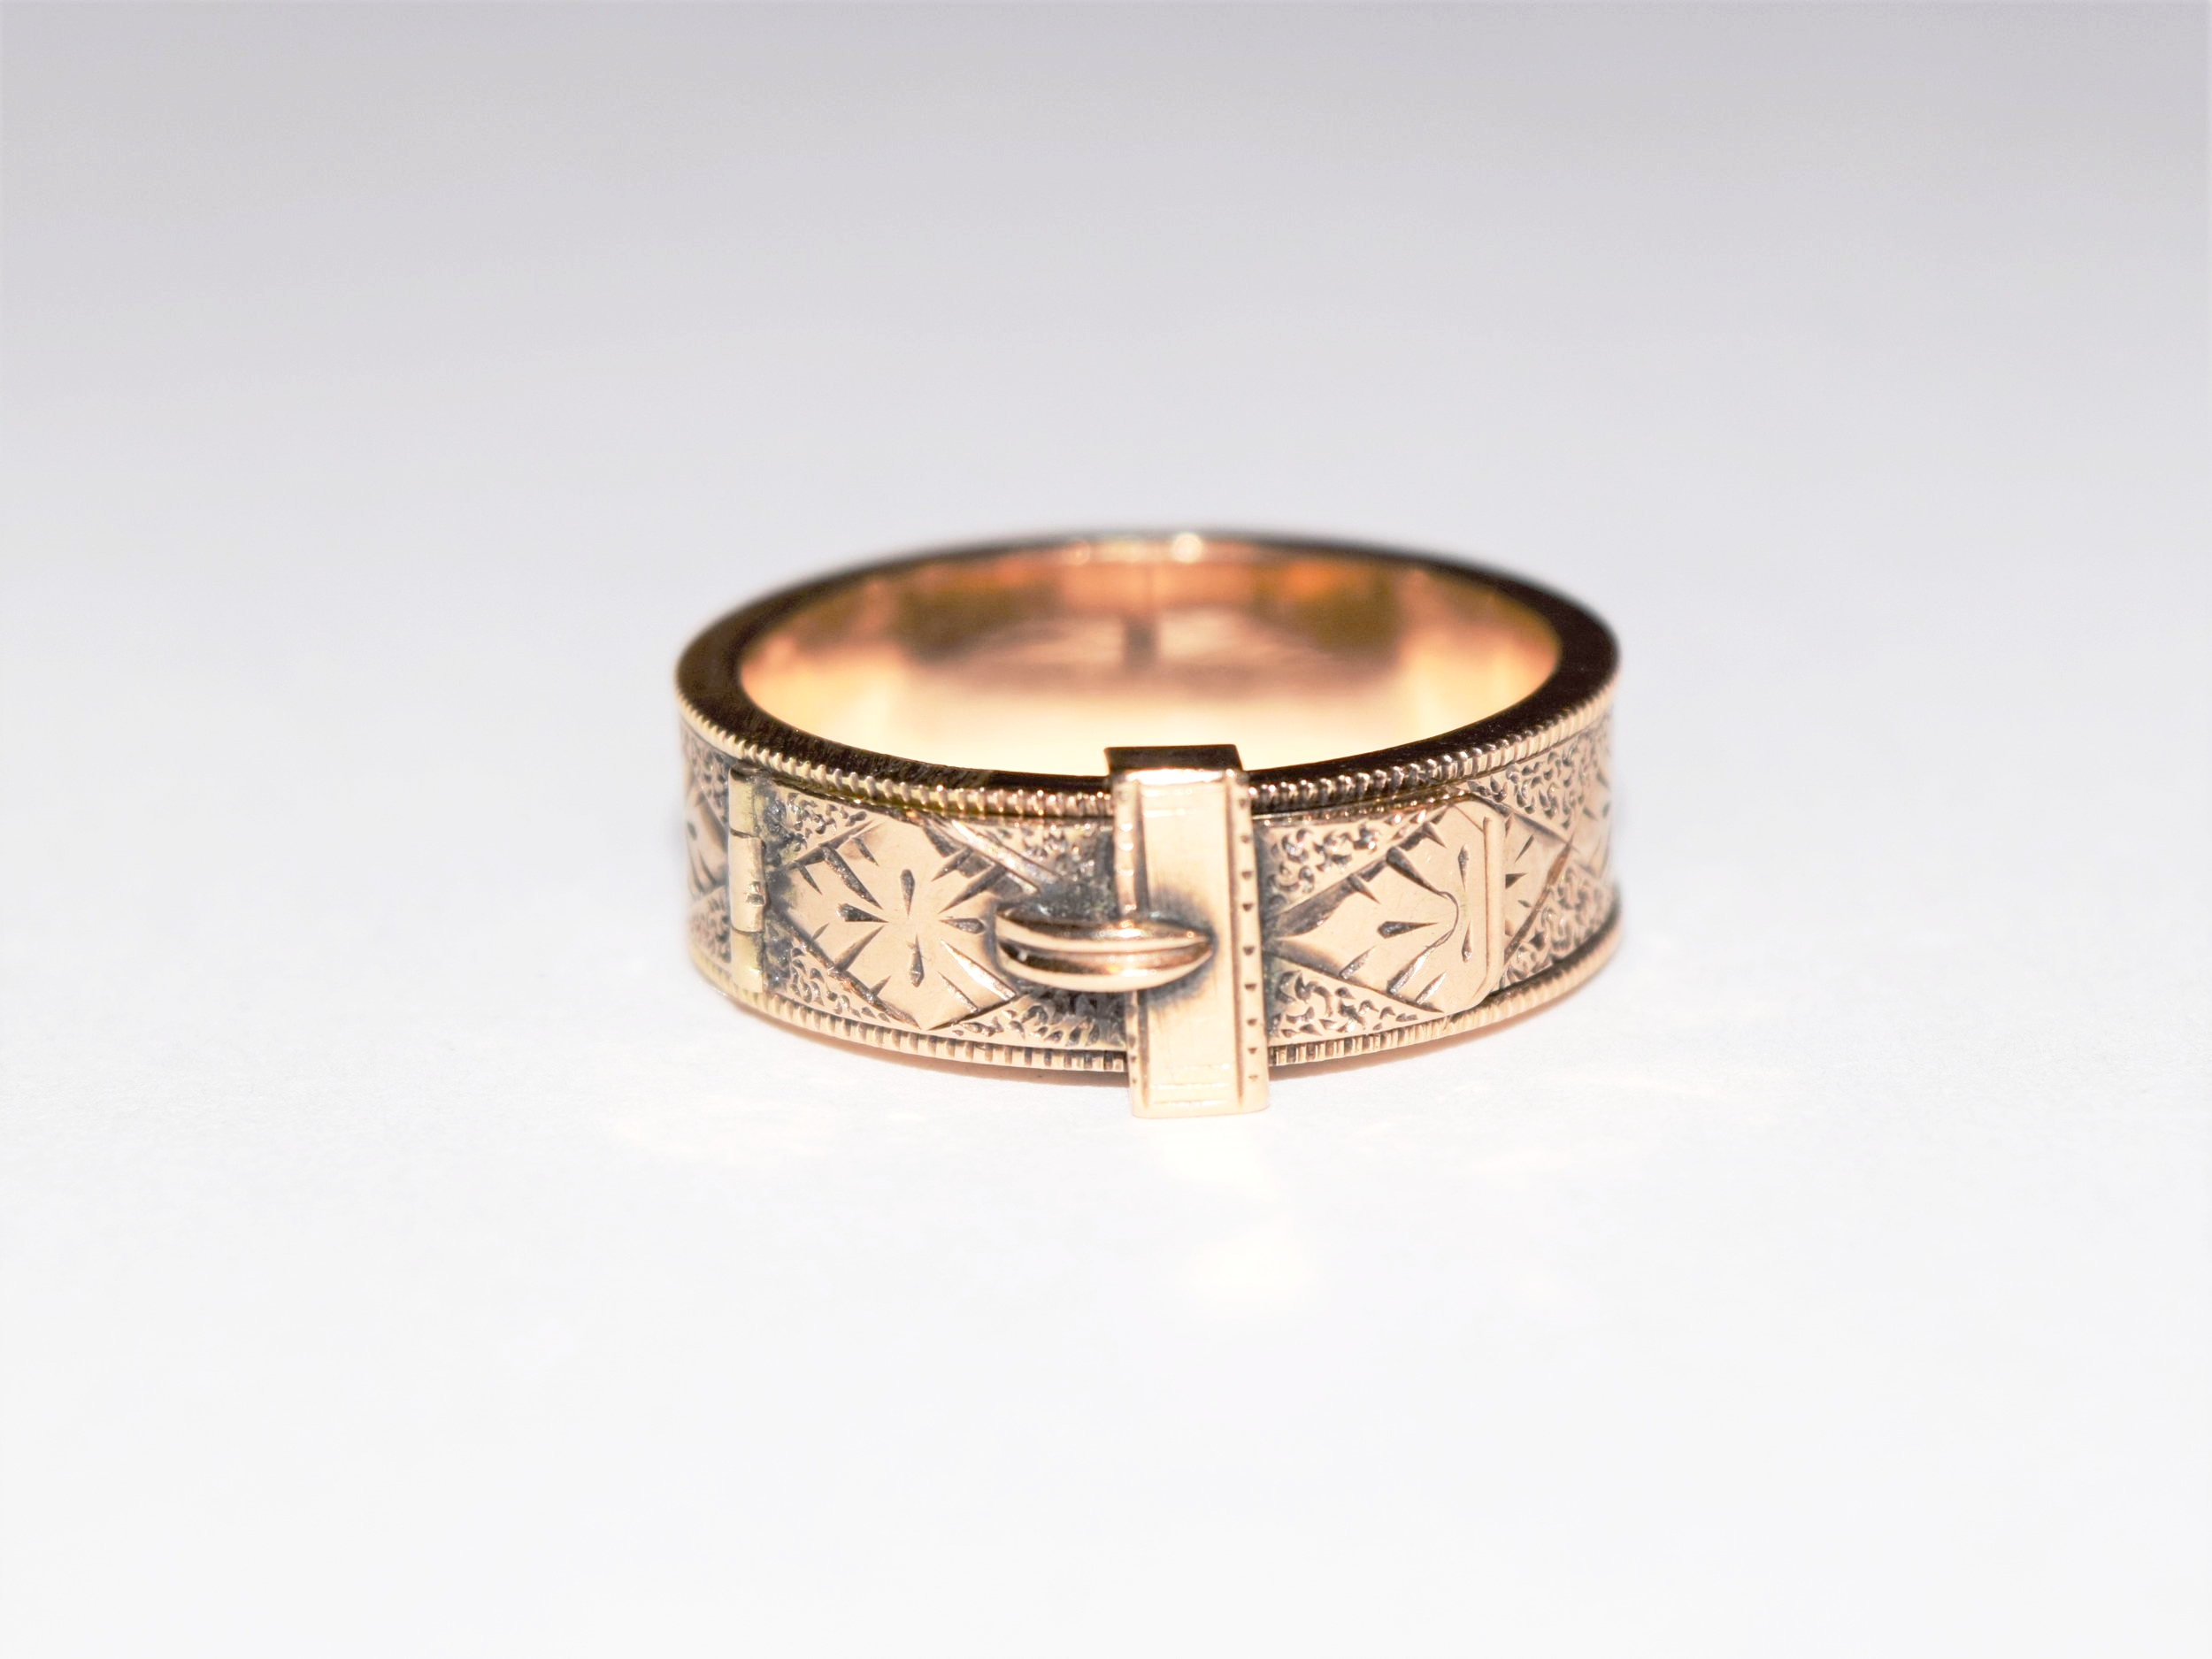 A 15K rosy gold locket ring with a buckle design and hand engraving, made c.1830.